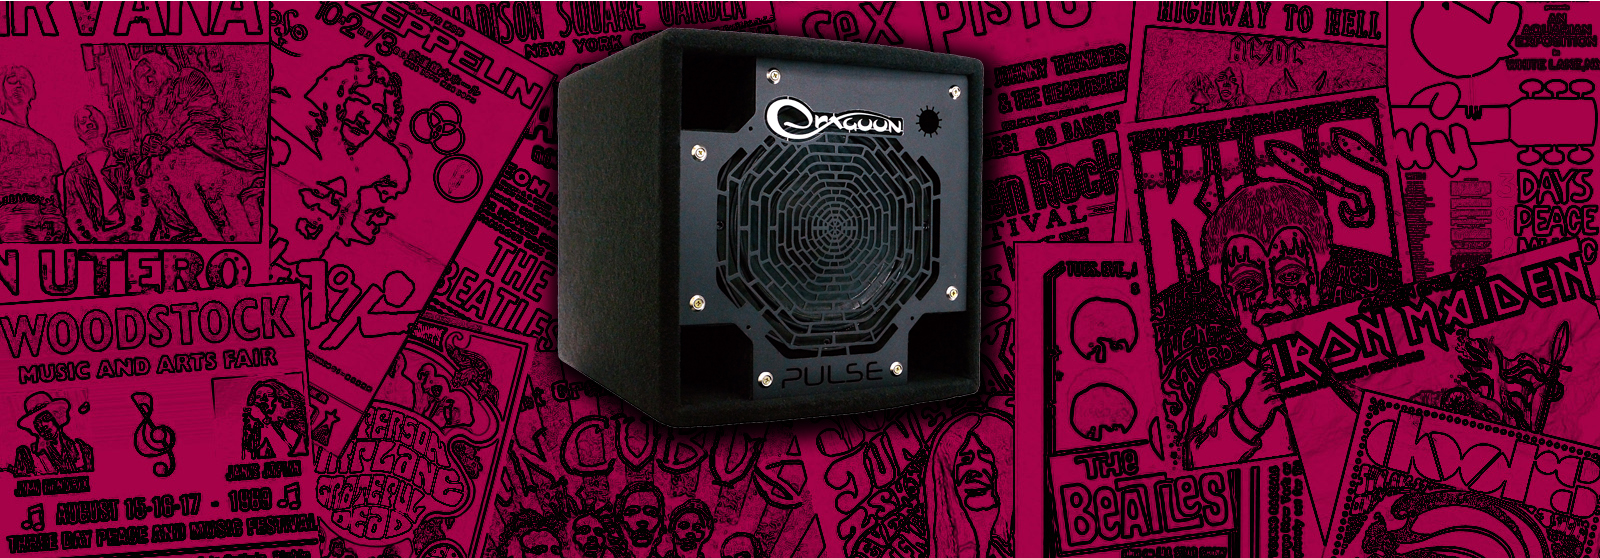 Dragoon - The Custom Speaker - DRAGOON-PULSE®-DP4110_20160331161130308772.jpg